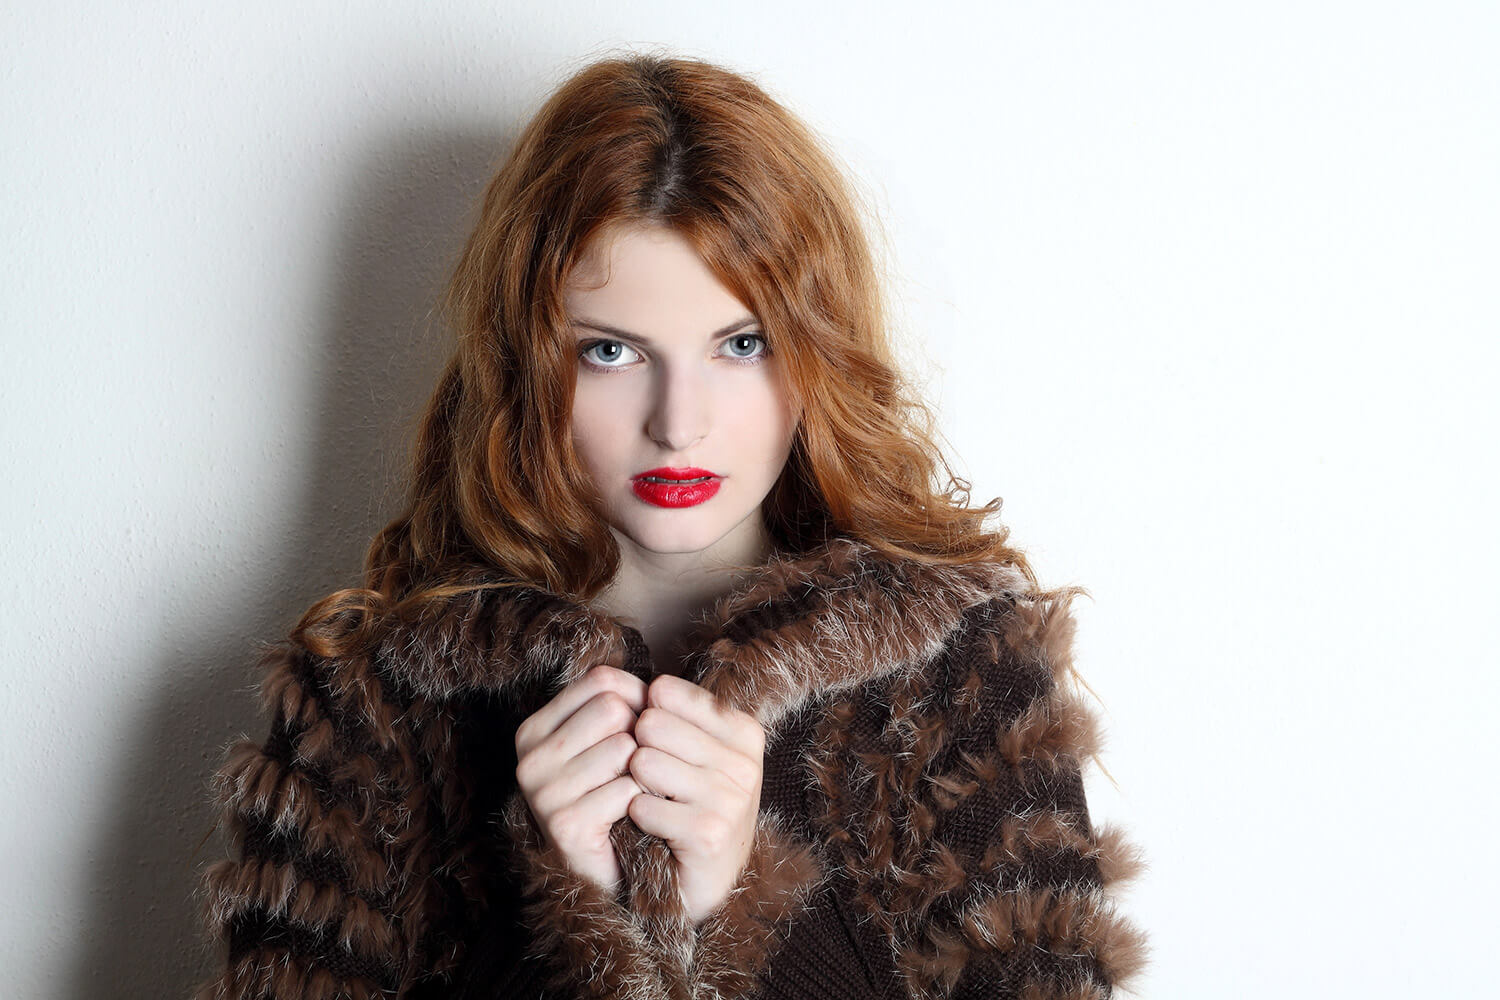 portrait of a woman in a fur jacket on a light background